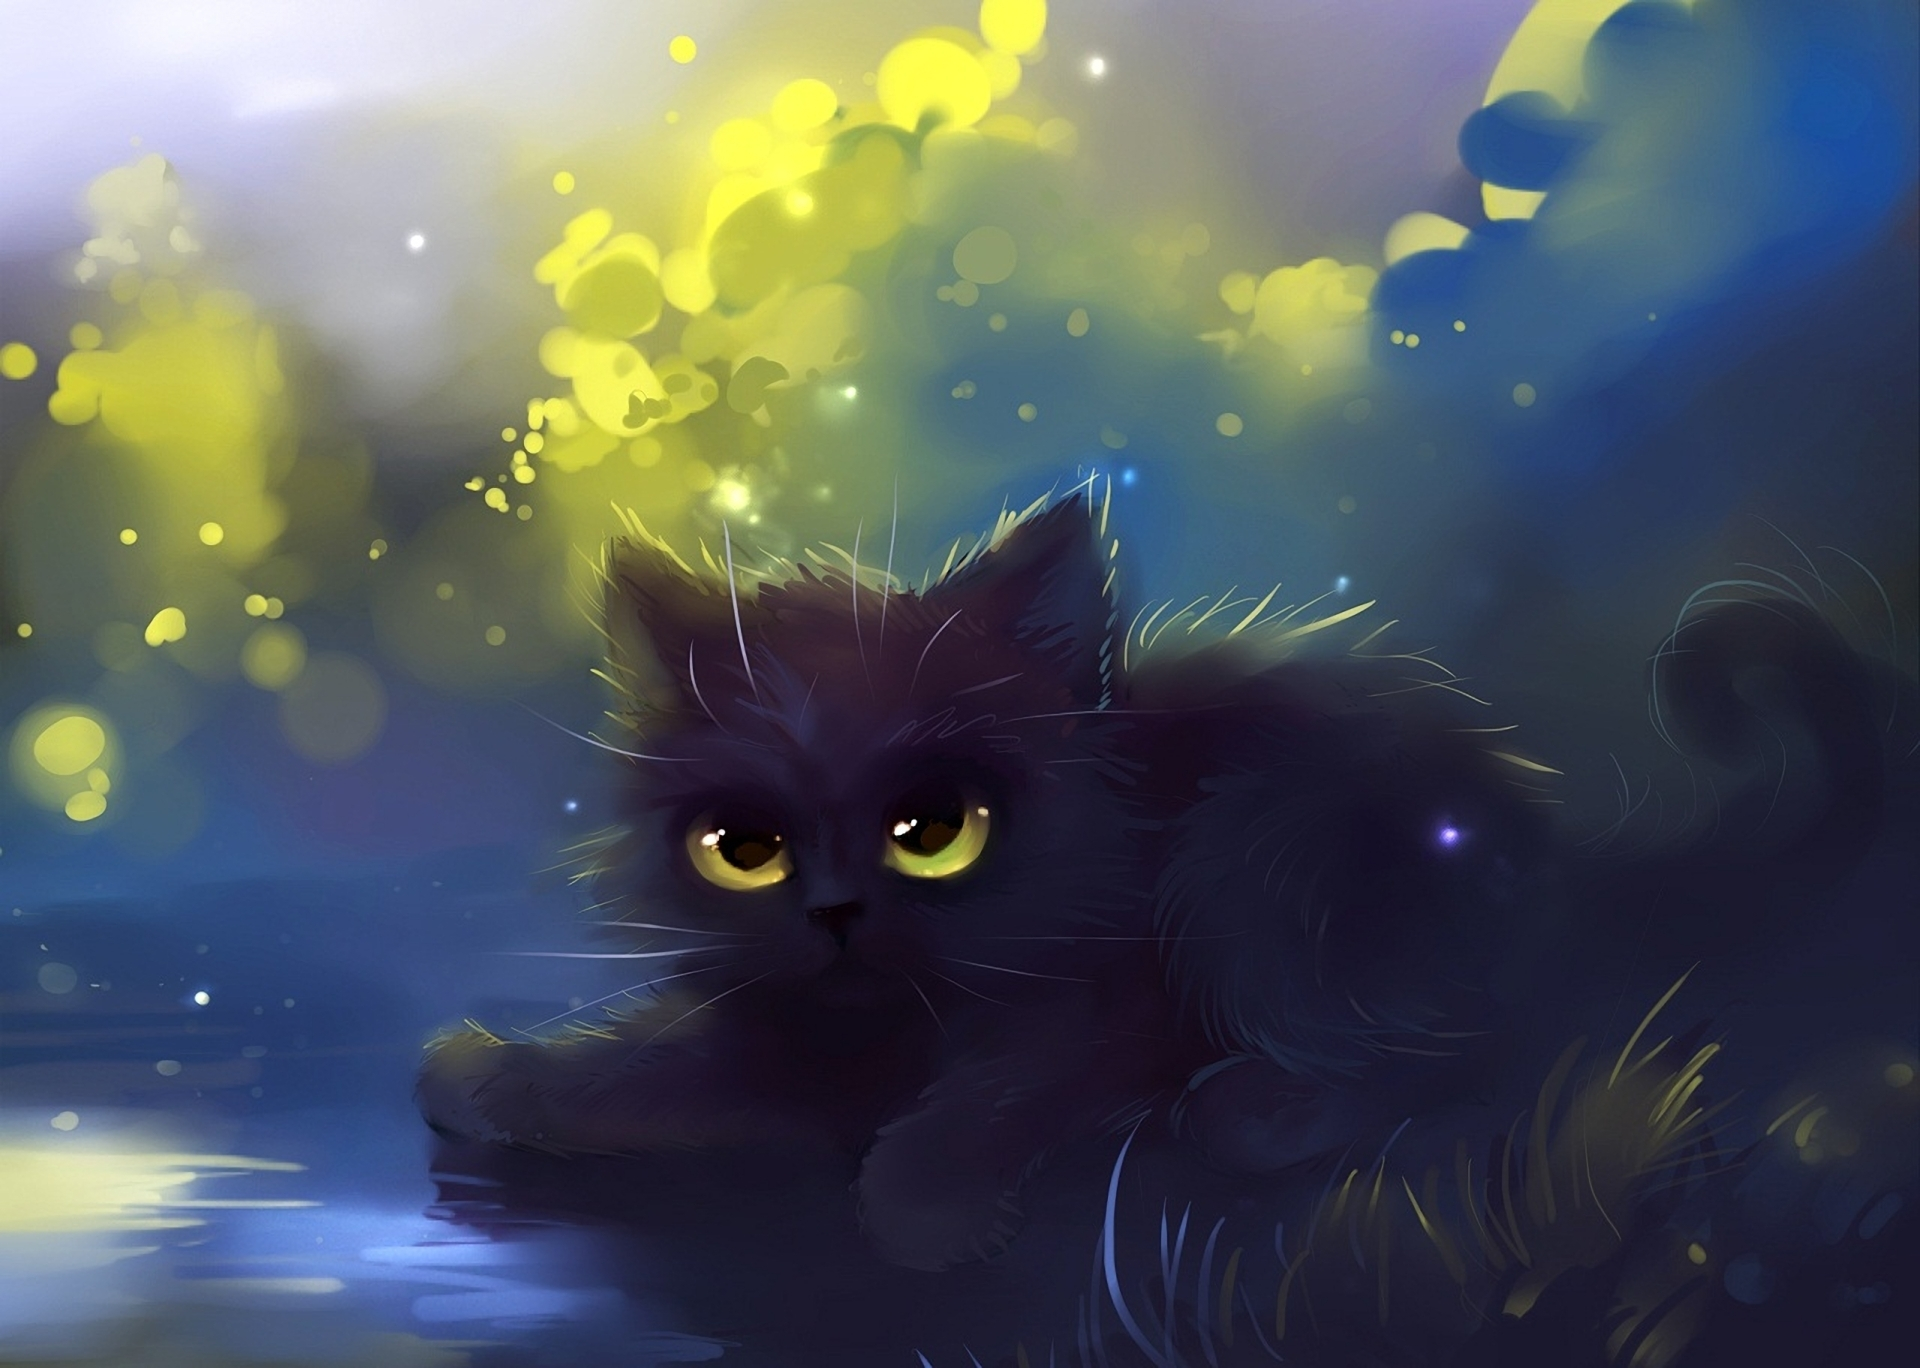 40 cute anime cat wallpaper on wallpapersafari - Cool backgrounds of cats ...